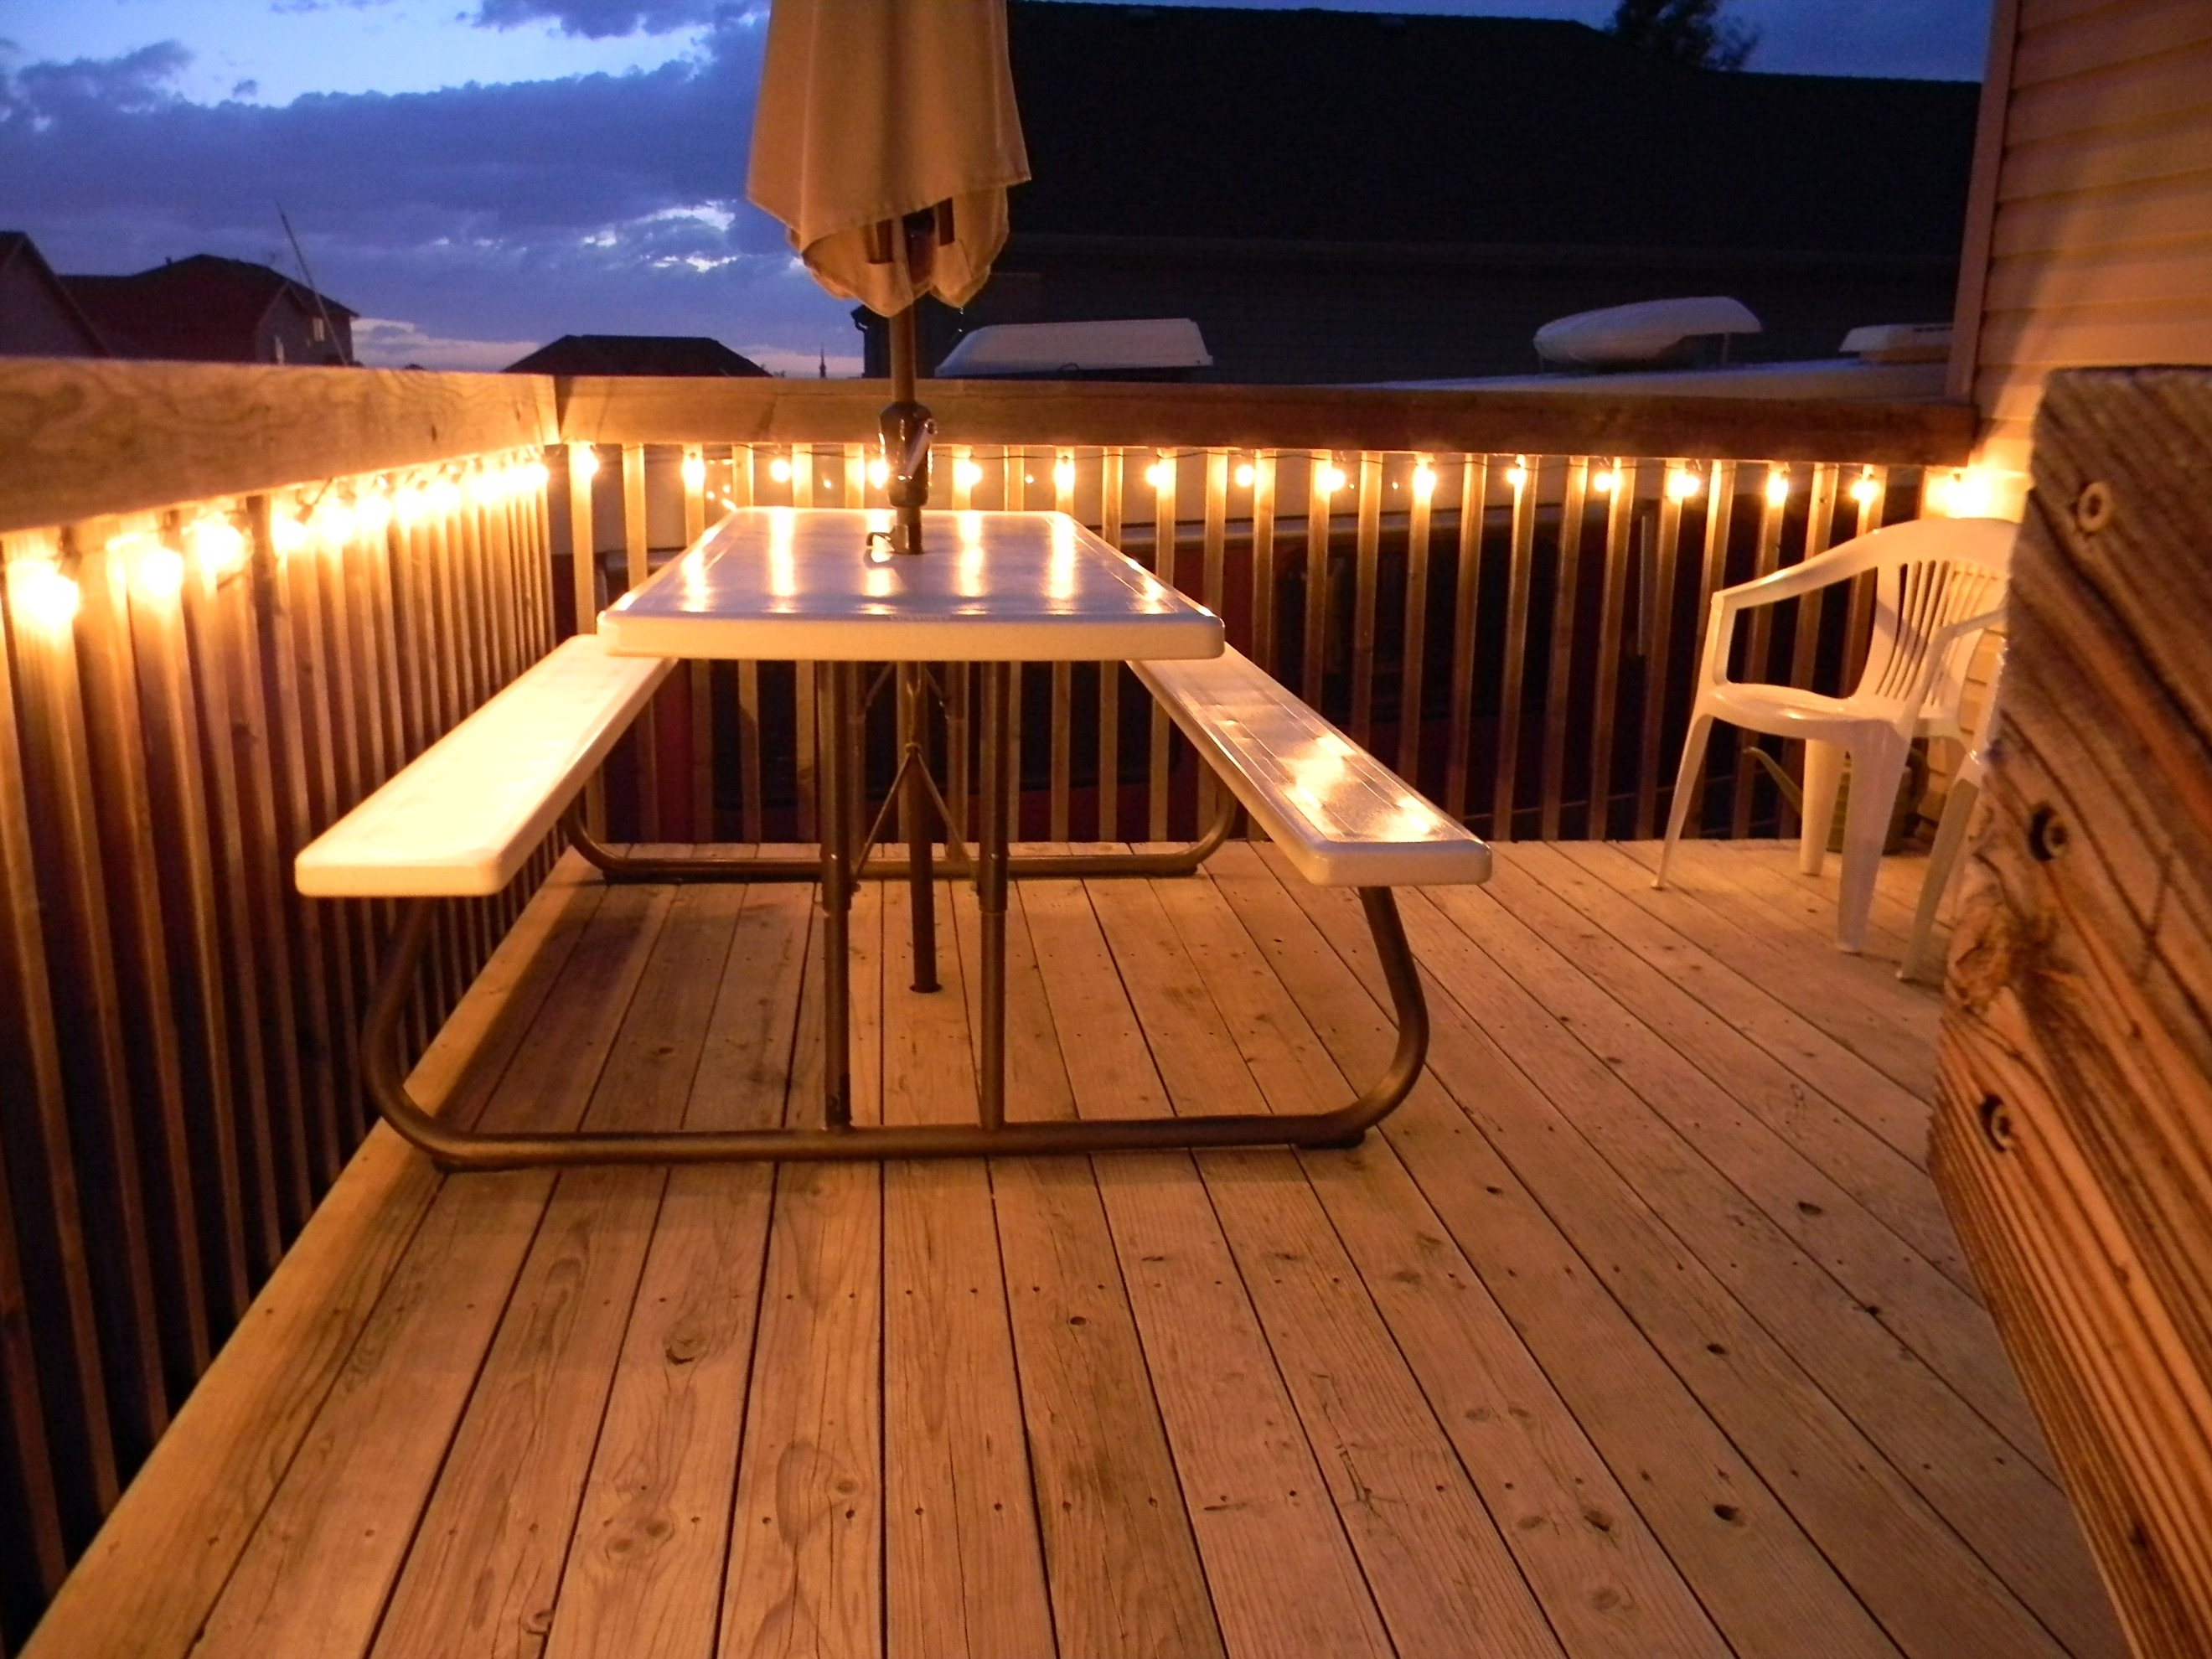 Garden Ideas : Low Voltage Deck Lighting Ideas Some Tips To Get The Intended For Modern Garden Low Voltage Deck Lighting (#7 of 15)